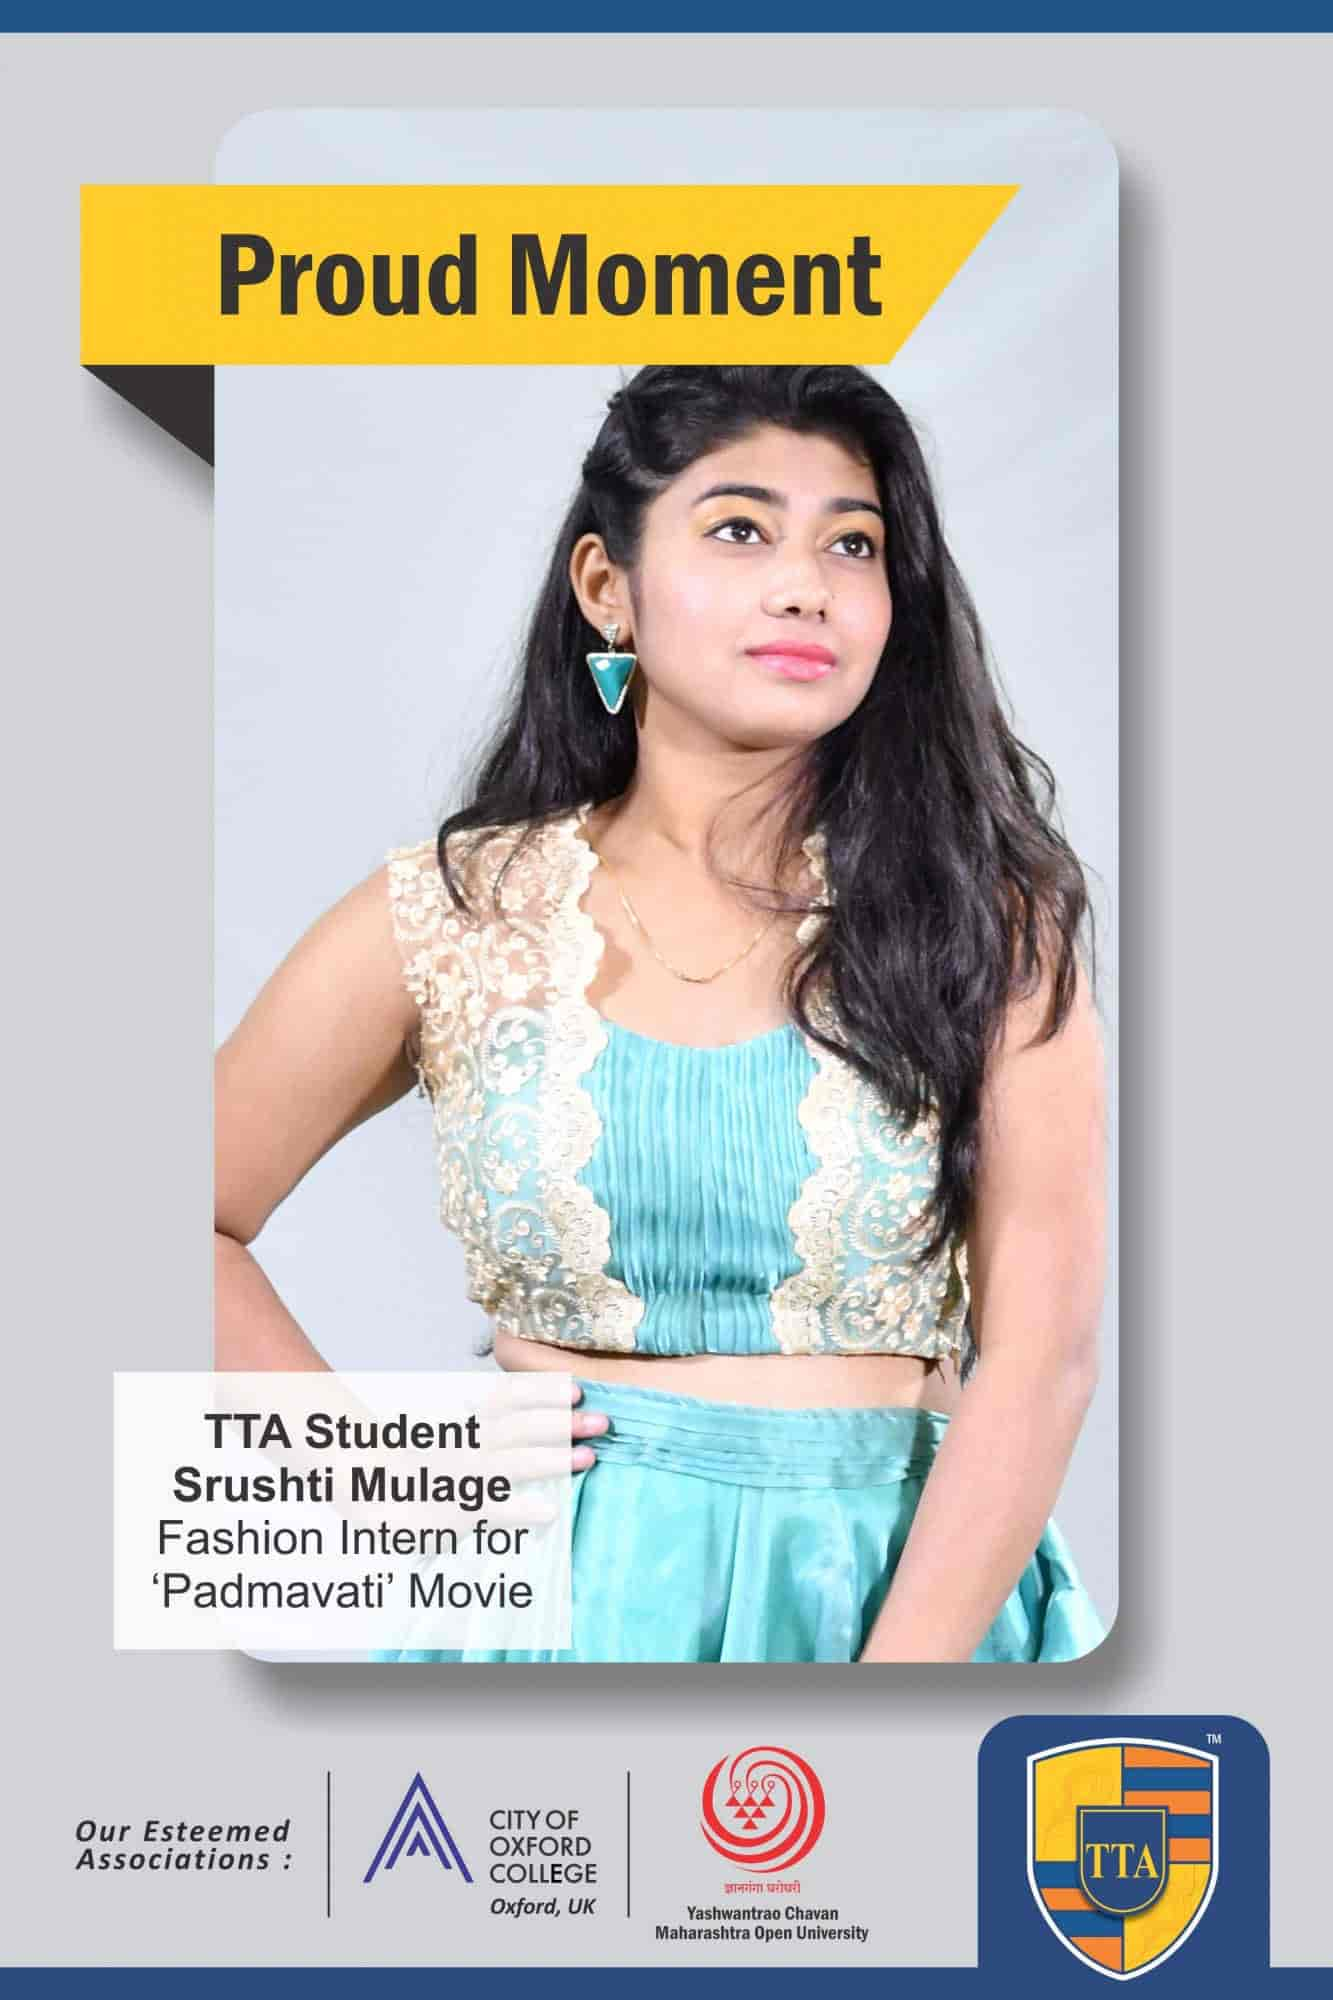 Times And Trends Academy Reviews Deccan Gymkhana Pune 1427 Ratings Justdial Page 8